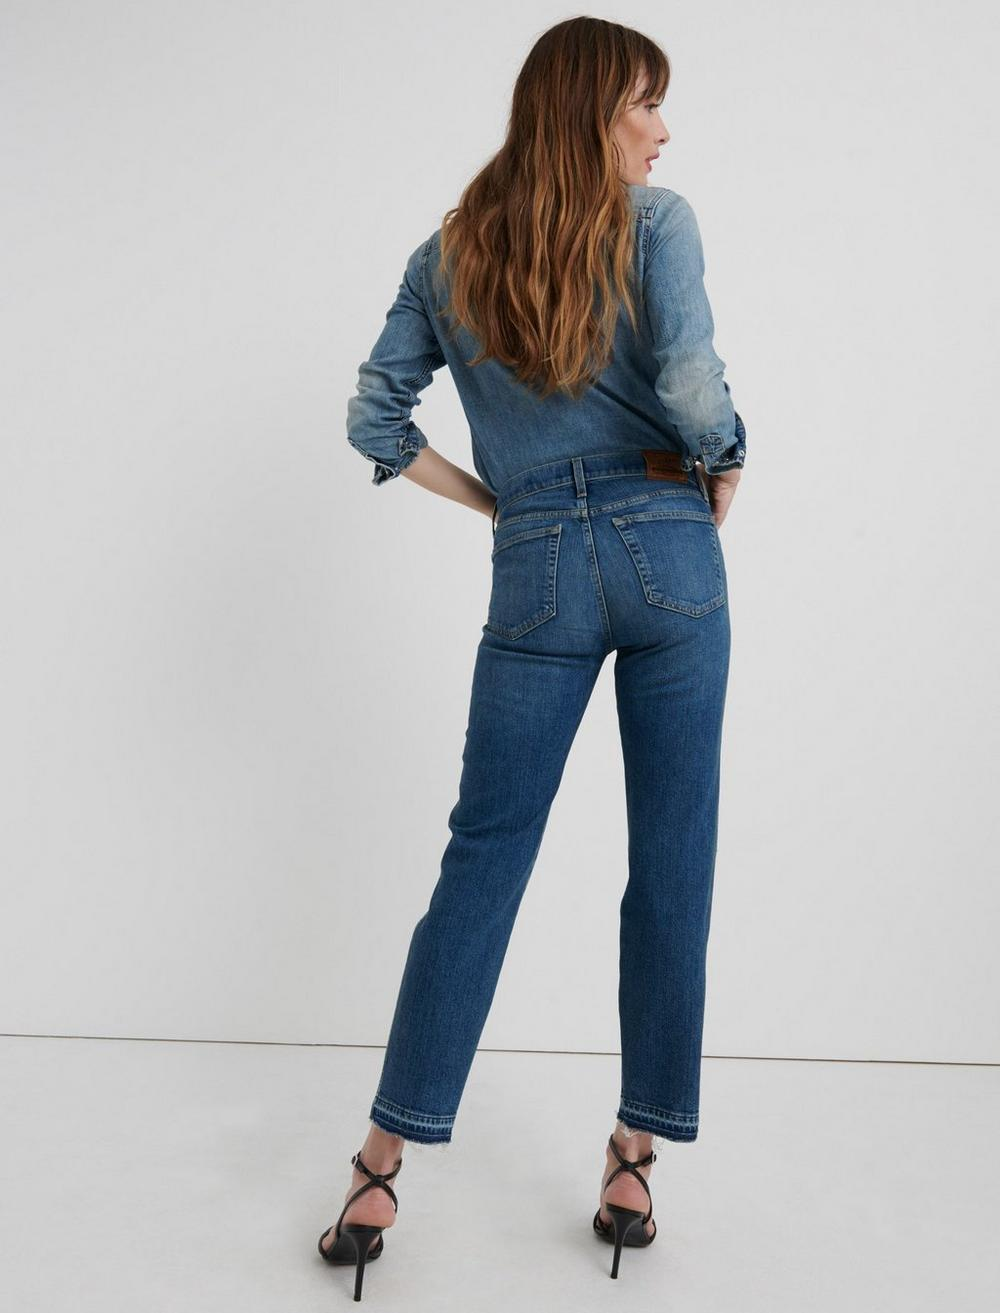 MID RISE AUTHENTIC STRAIGHT CROP JEAN, image 3